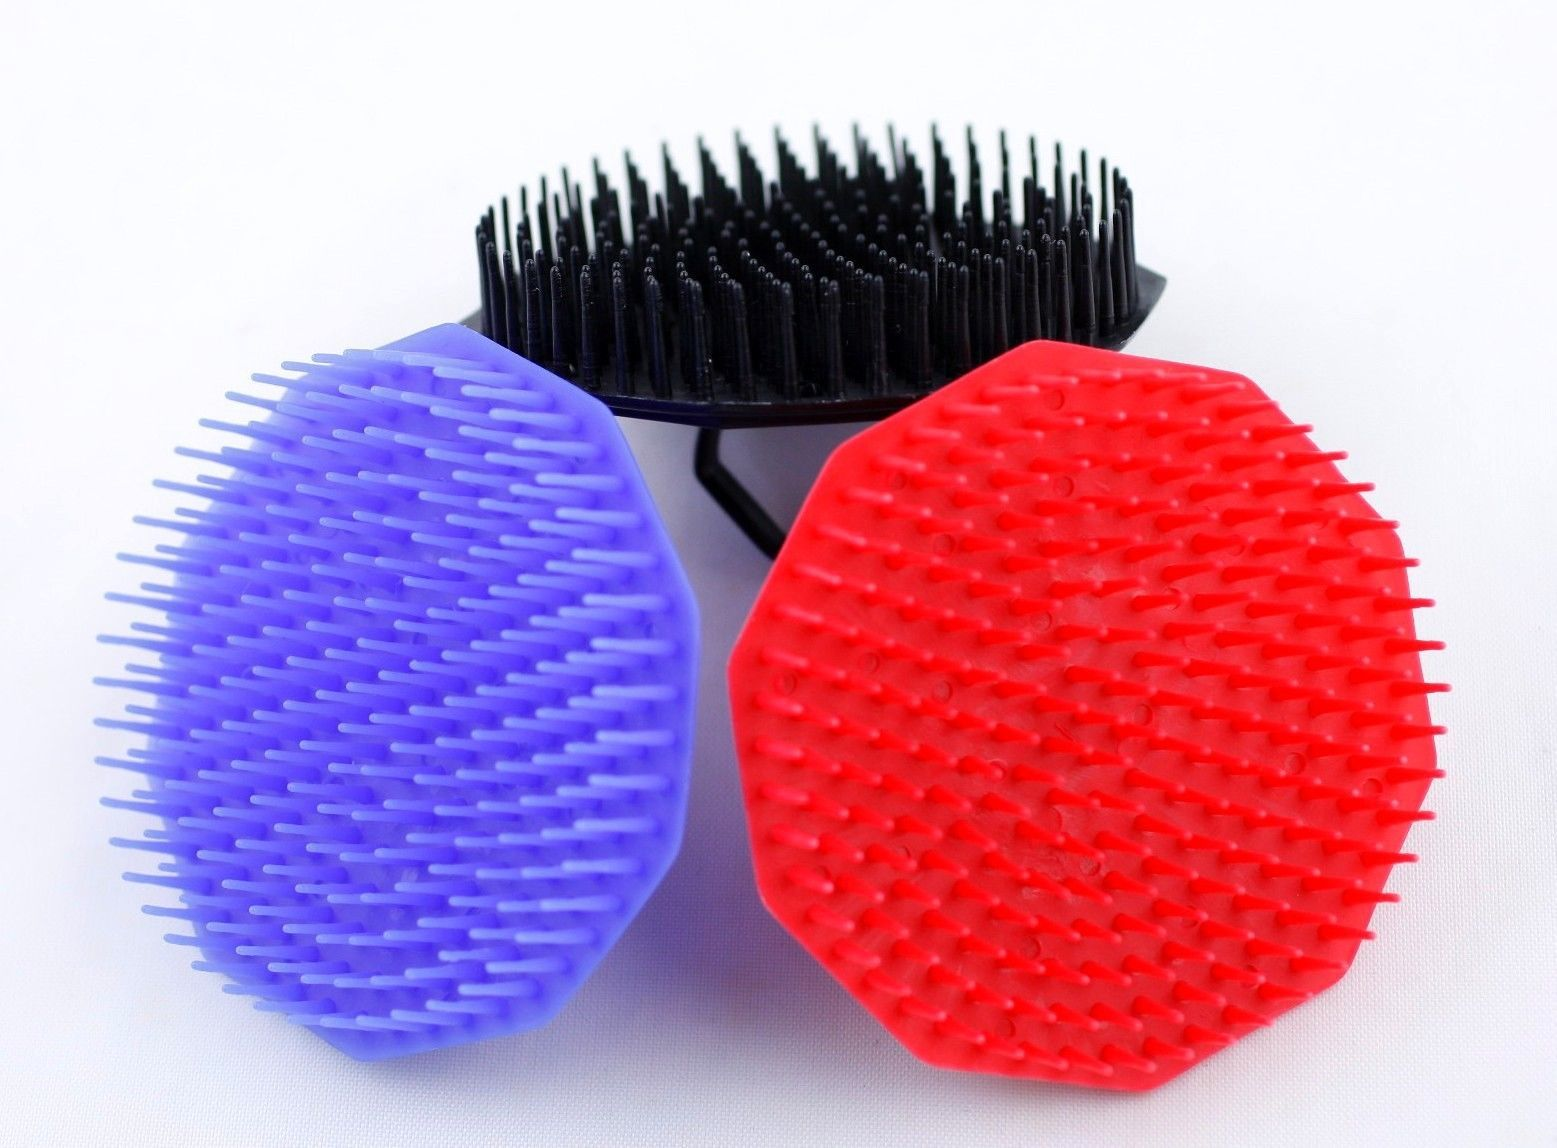 Primary image for 1 Piece Hair Shampoo Scalp/Body Massage Brush Comb Massage/Brush with a Handle